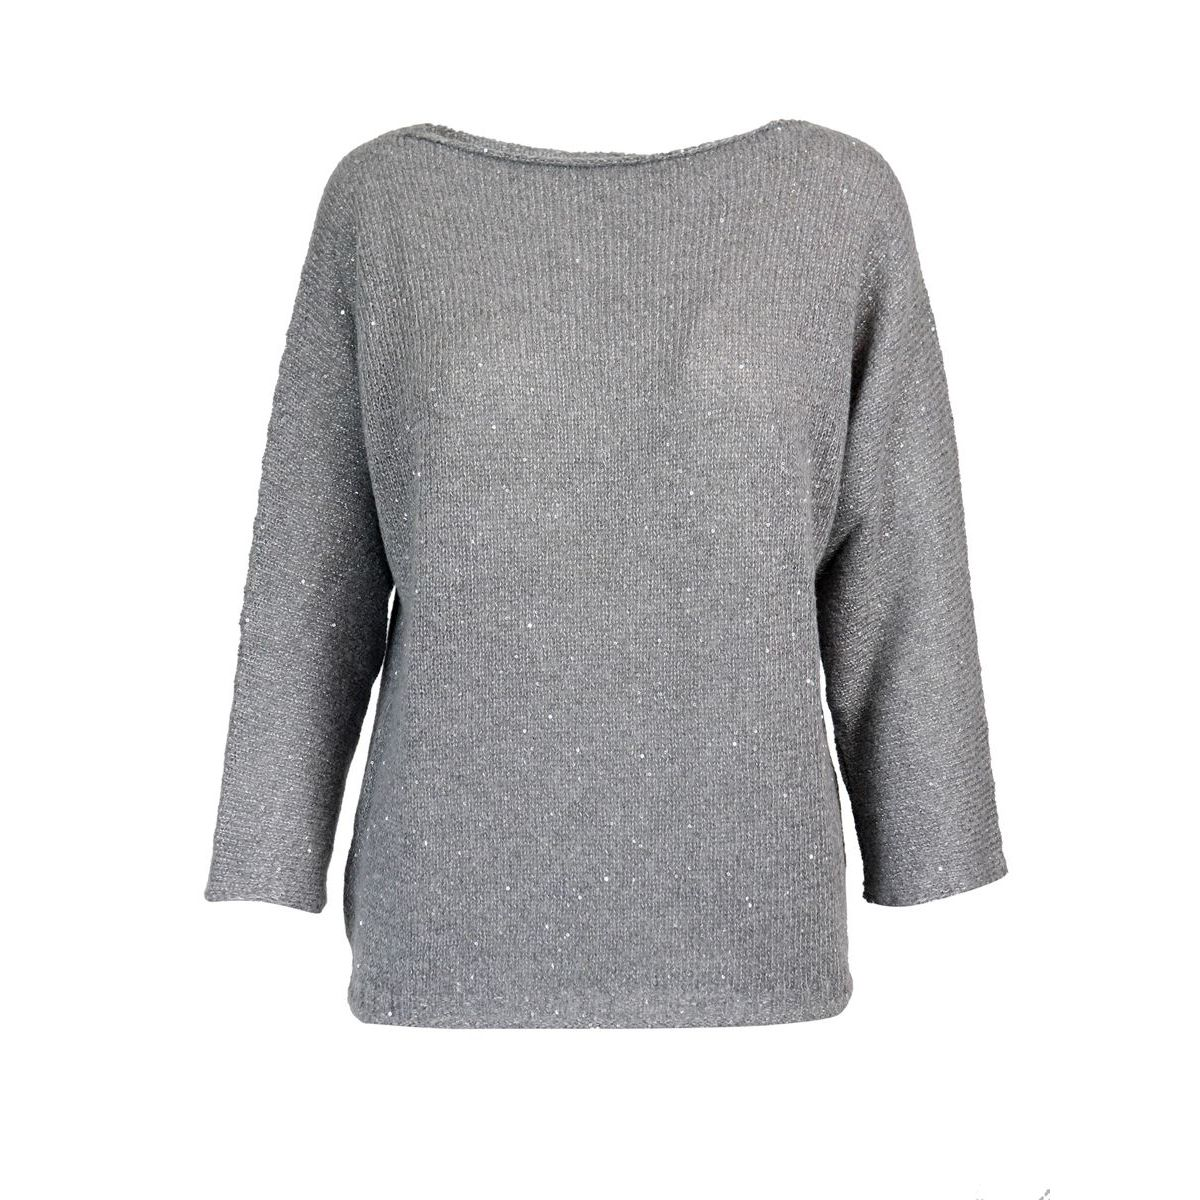 Knitted wool sweater with three-quarter sleeves Medium gray Gran Sasso